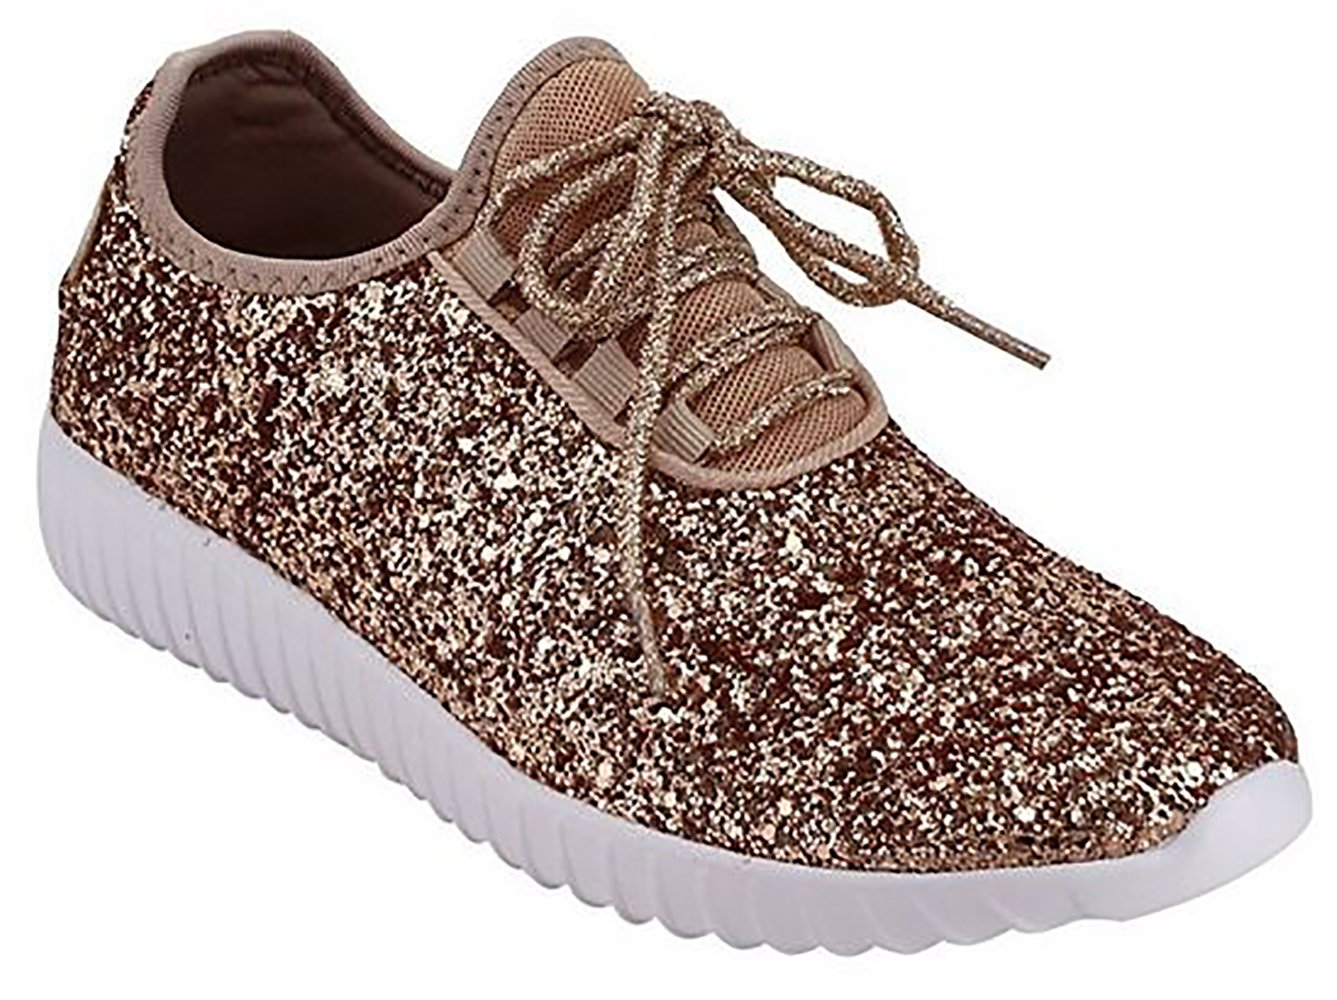 MVE Shoes Women's Glitter Sneakers | Fashion Sneakers | Sparkly Shoes for Women remy 19 Rose Gold 10